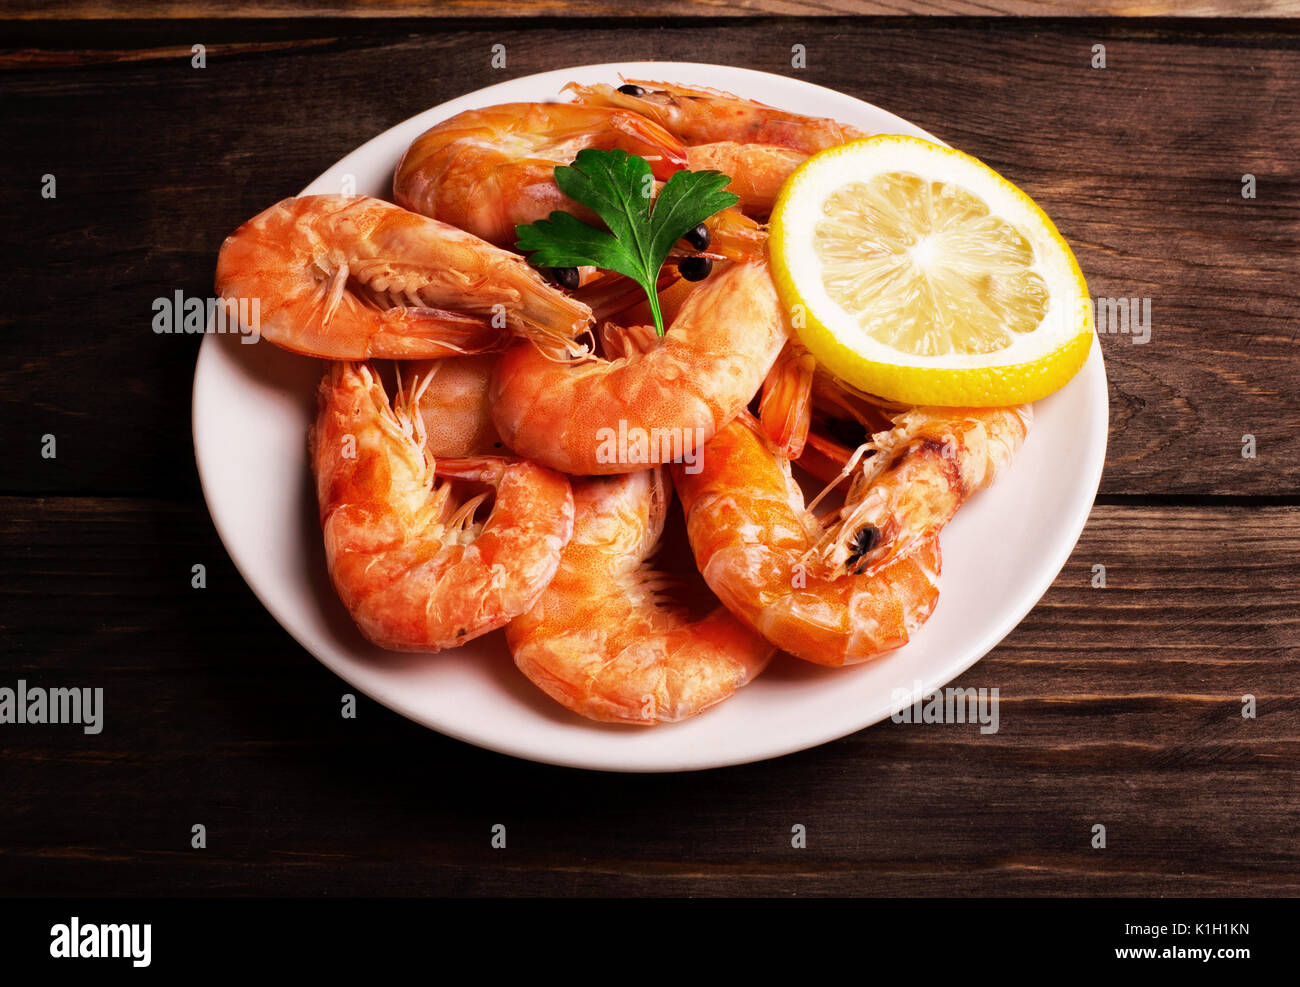 Prepared shrimp with lemon and parsley on a white plate on wooden background - Stock Image